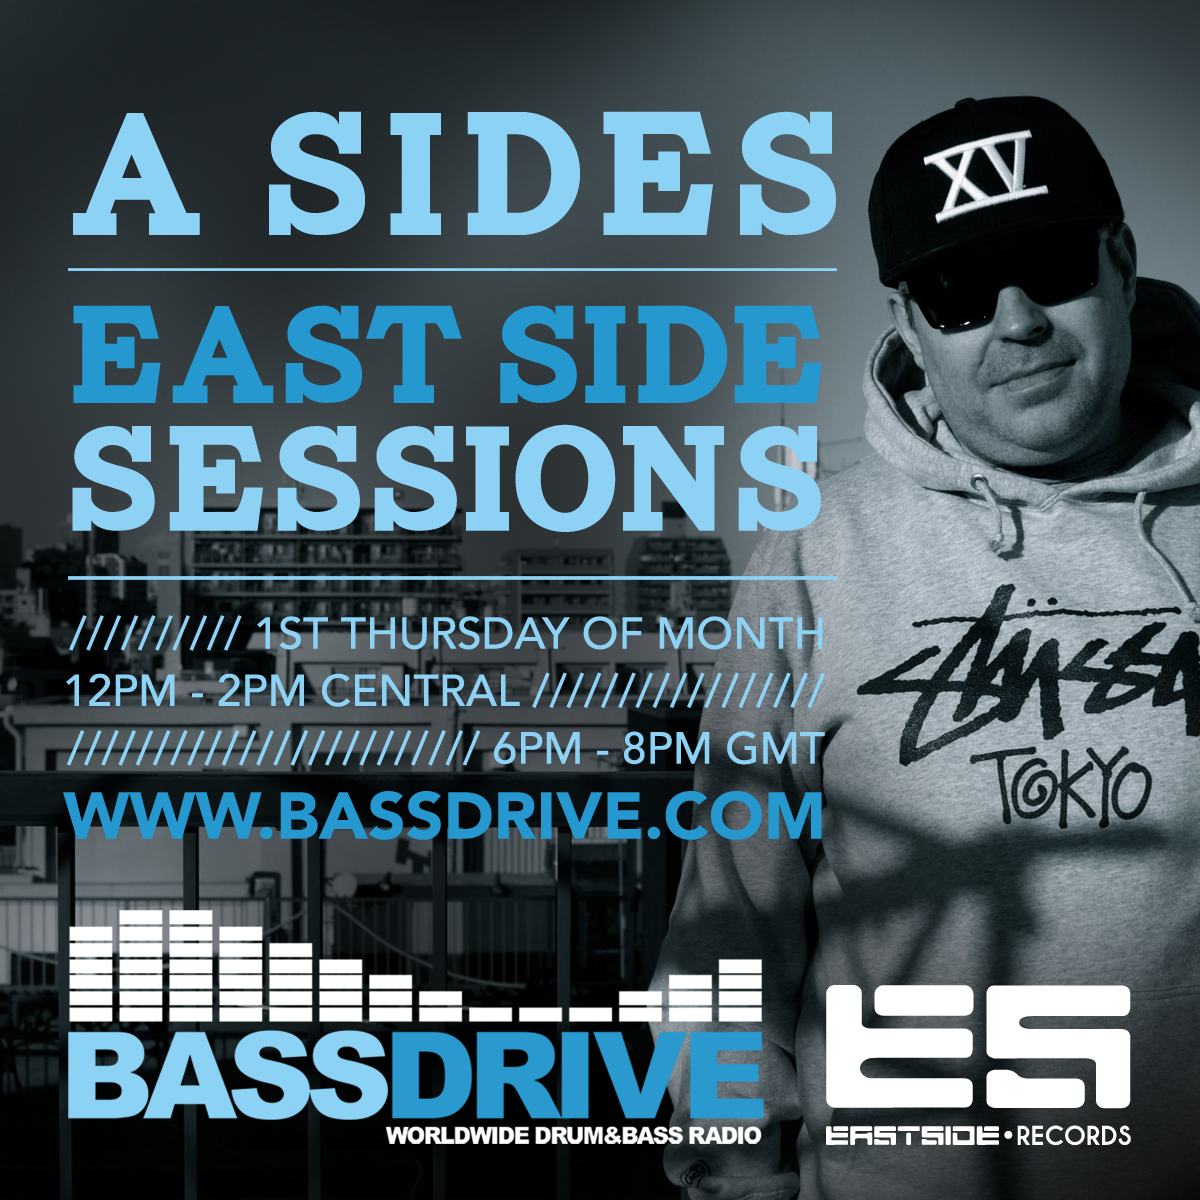 Eastside Sessions